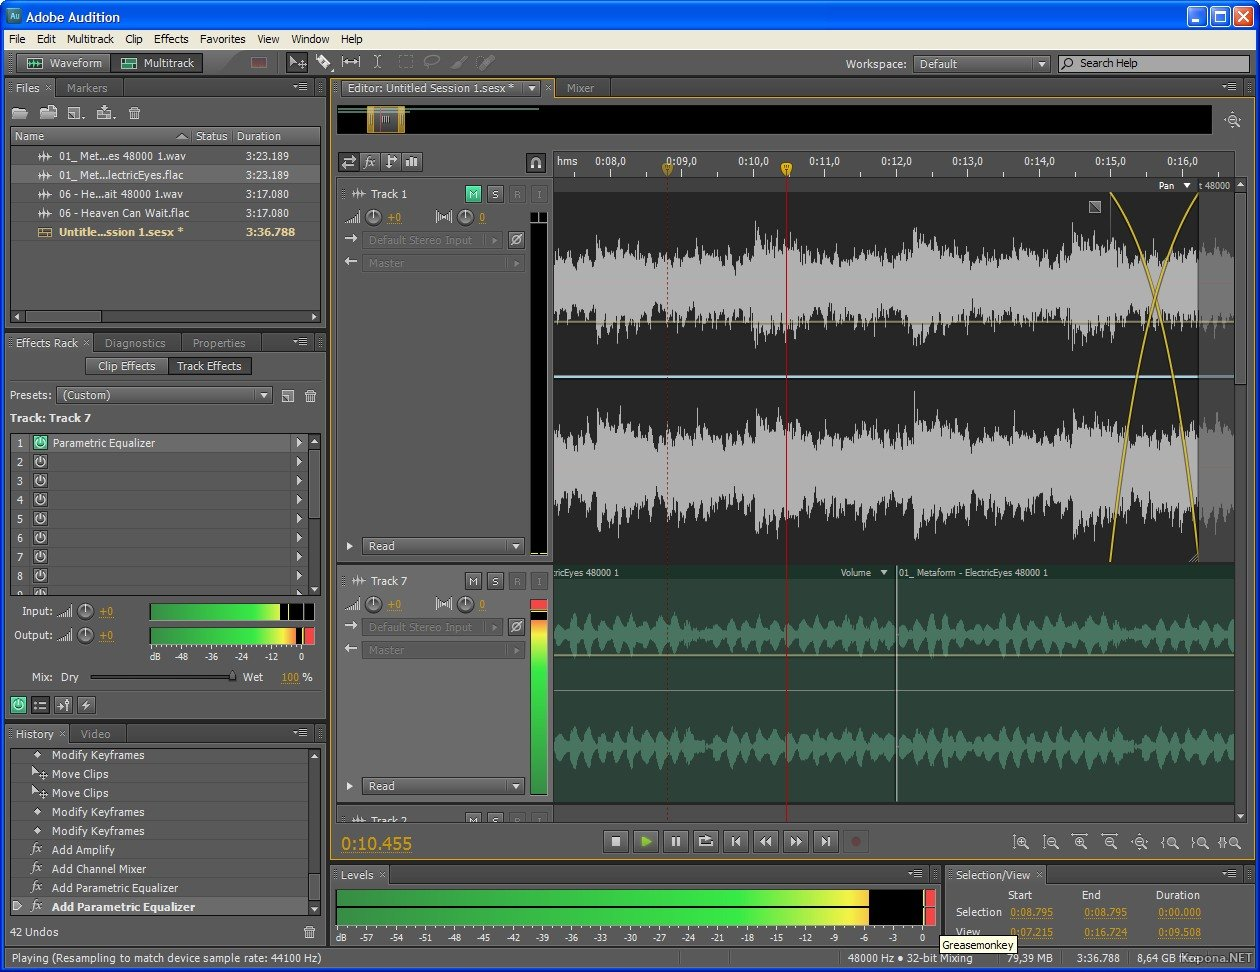 Adobe Audition CS5.5 v4.0 *KEYGEN*